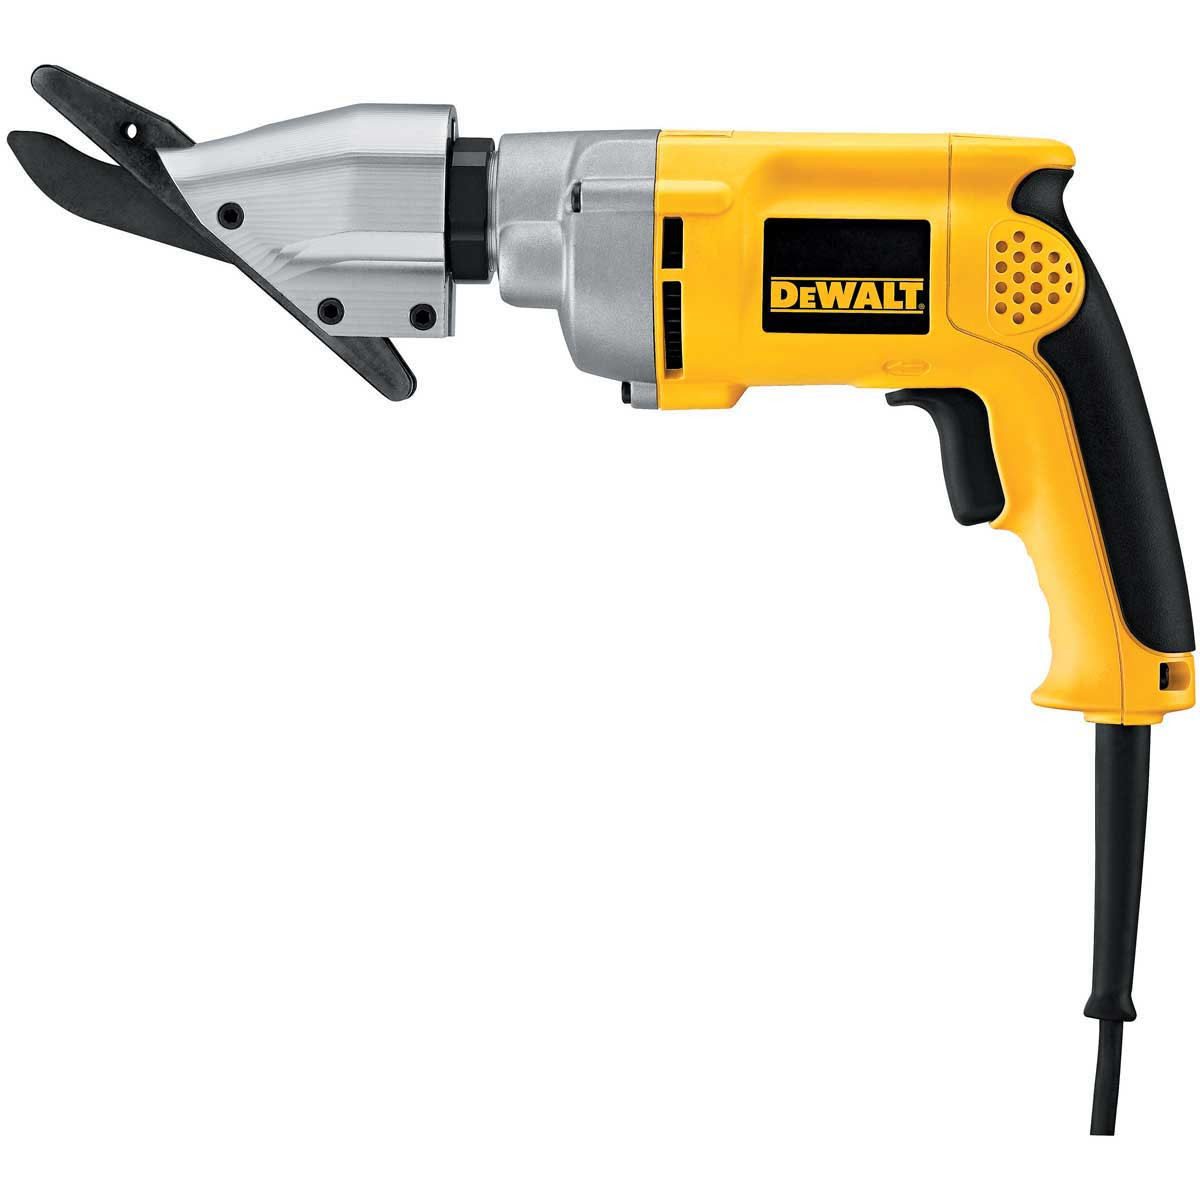 D28605 Dewalt 5/16 Inch Variable Speed Cement Shear